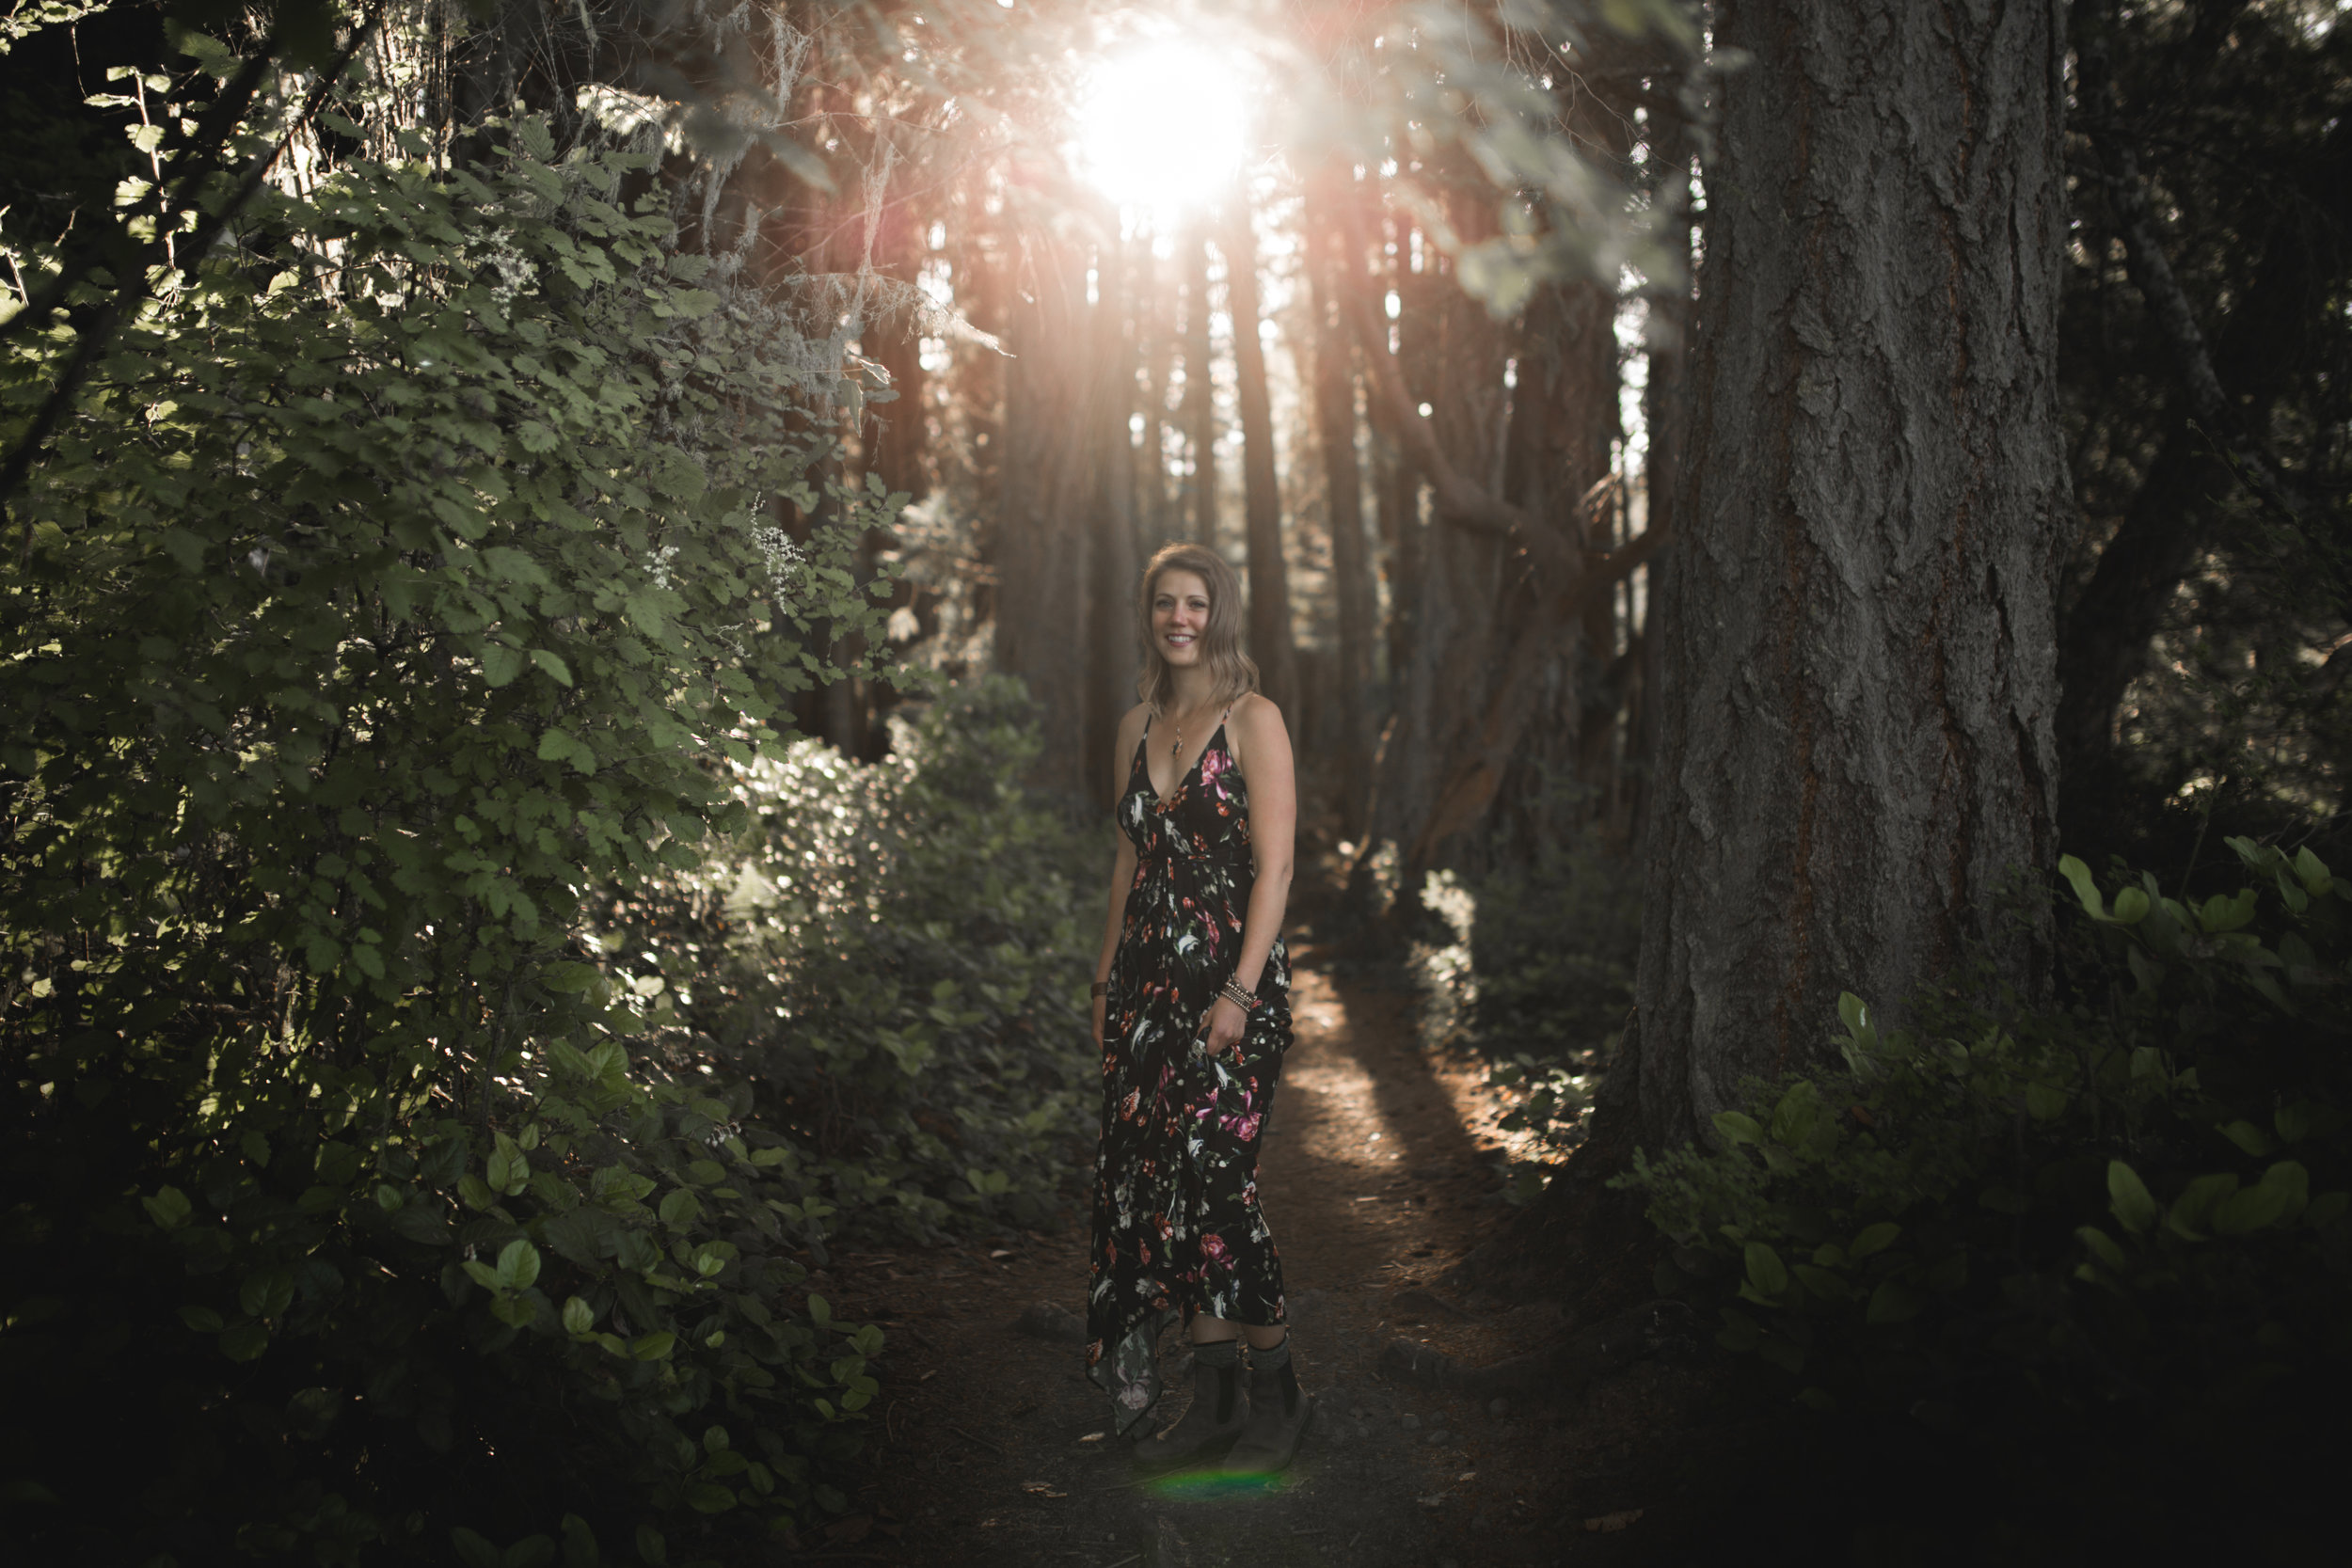 20-Adam-Ziorio-Photography-Engagement-Hangoutsession-East-Sooke-Park-Victoria-BC-Telsa&Willy.jpg